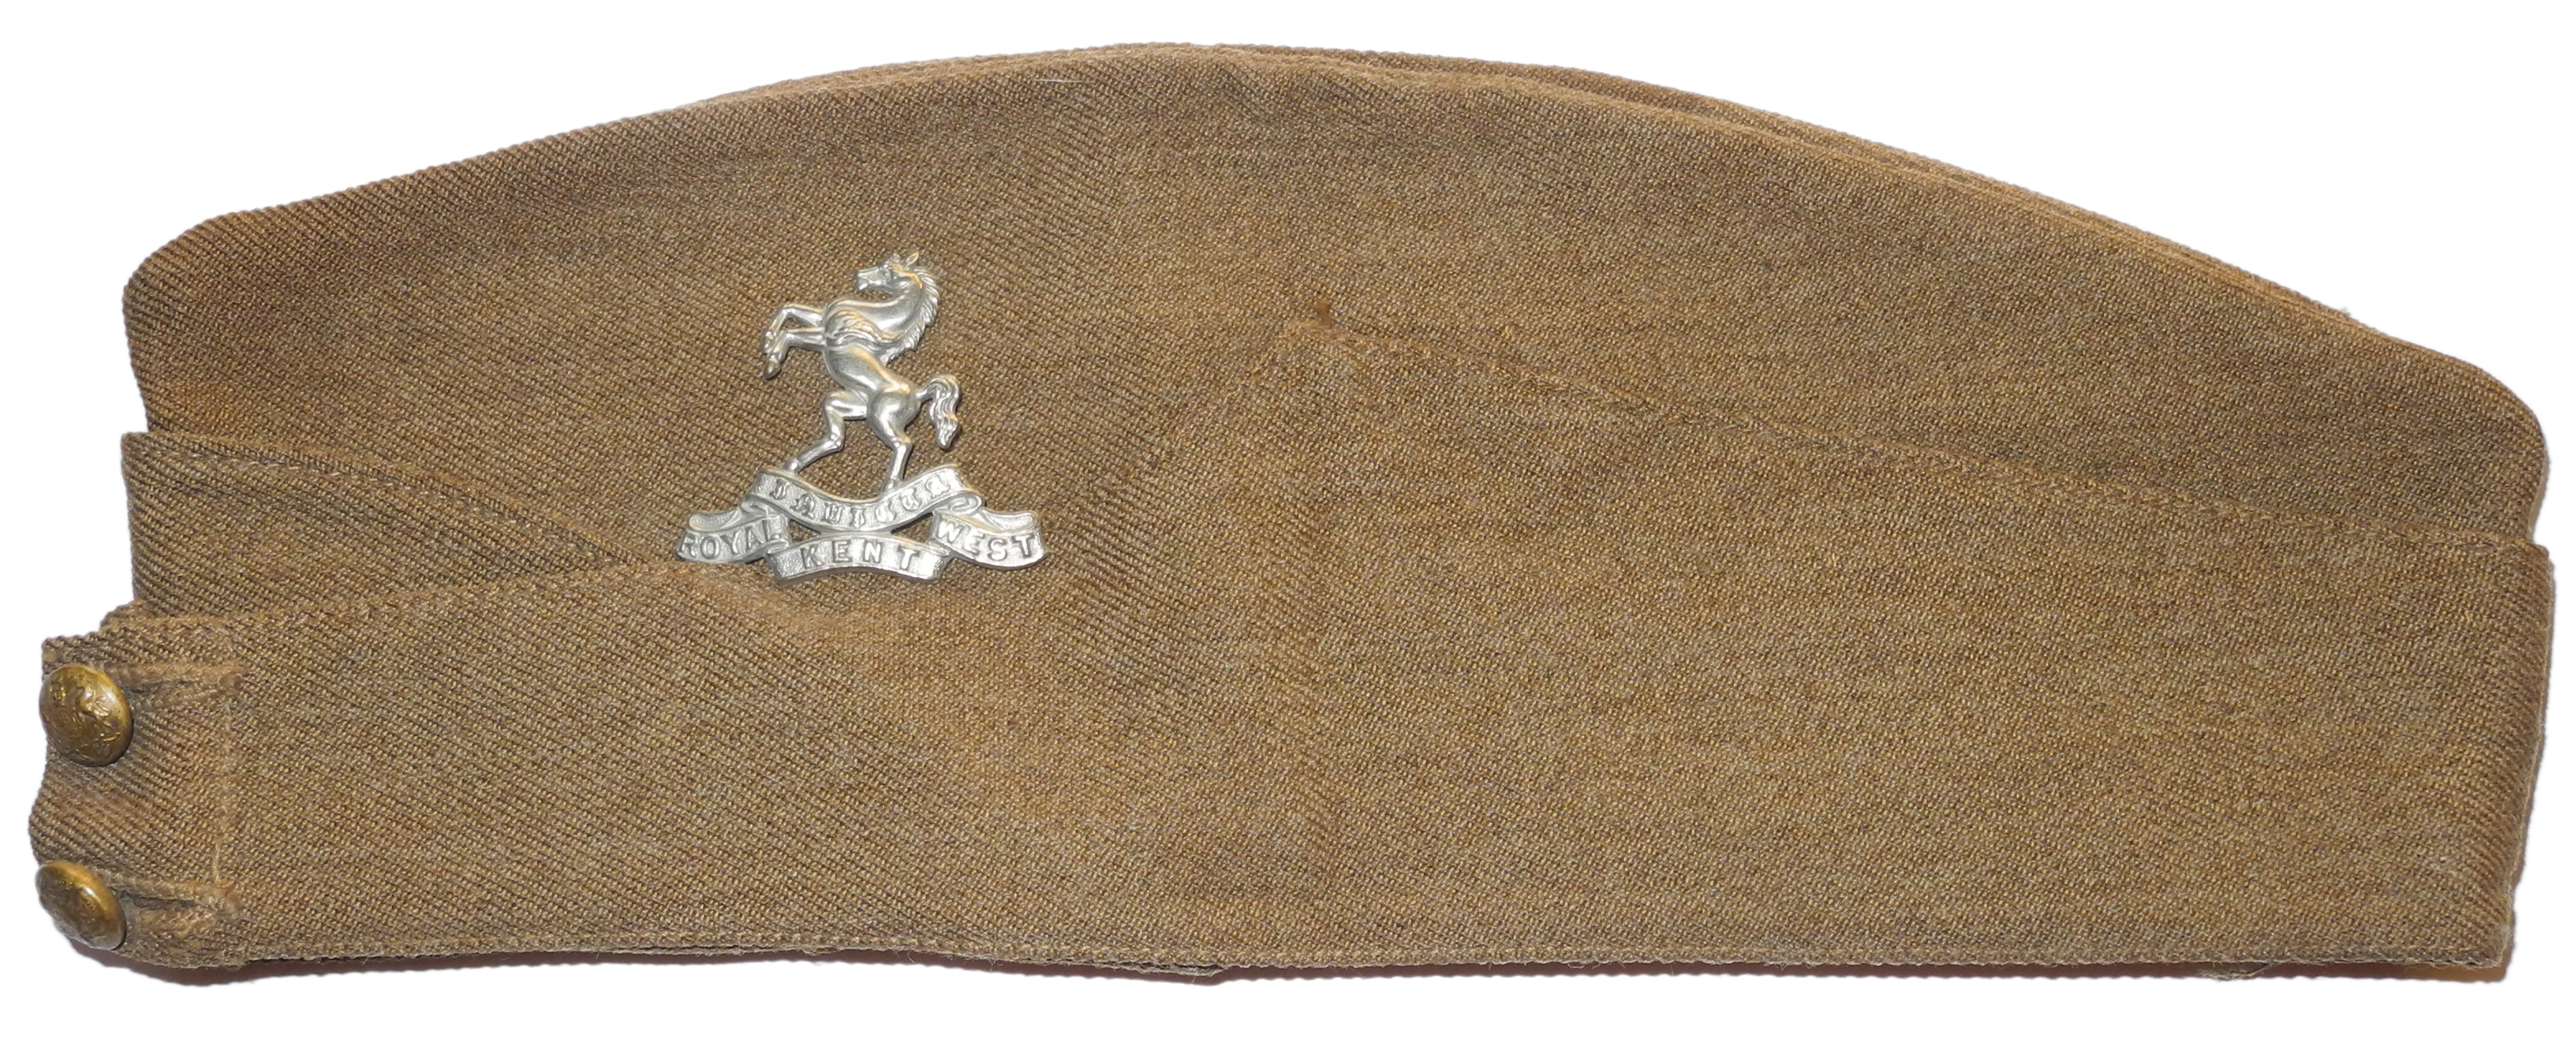 British Army sidecap with Royal West Kent Regt. badge